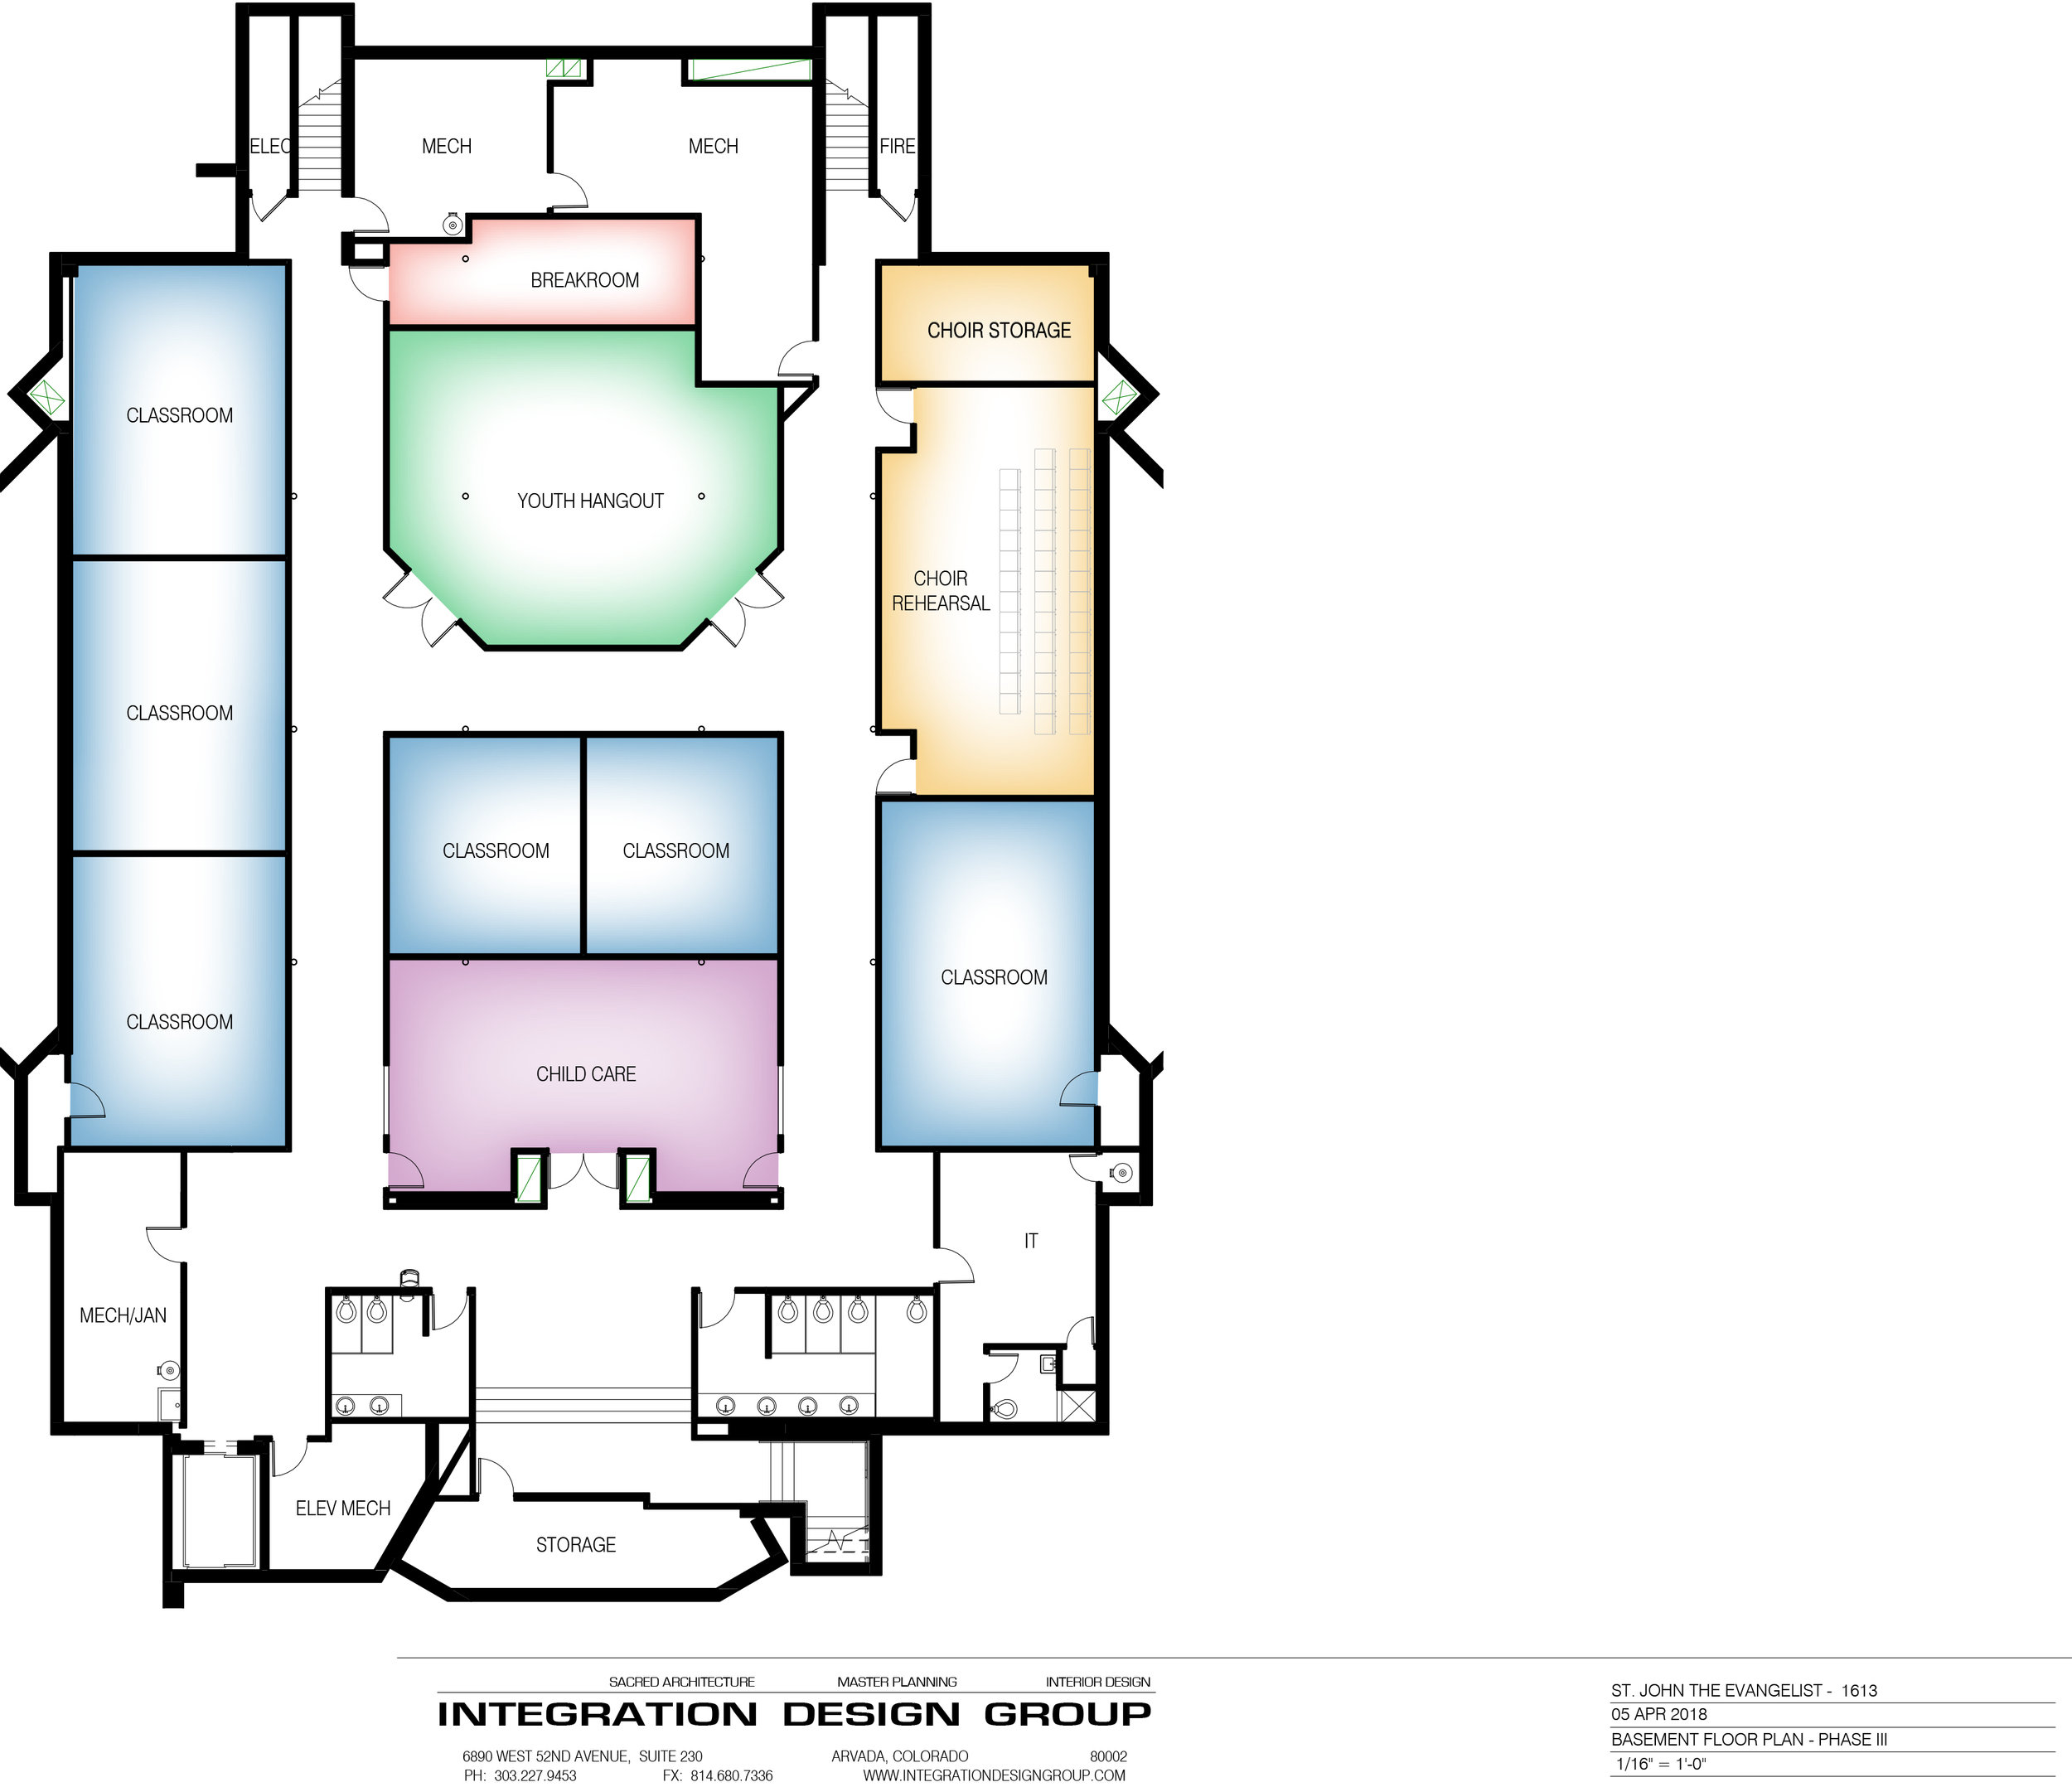 Proposed Church Basement with large youth space, additional meeting rooms, dedicated nursery/childcare area, and choir rehearsal space.